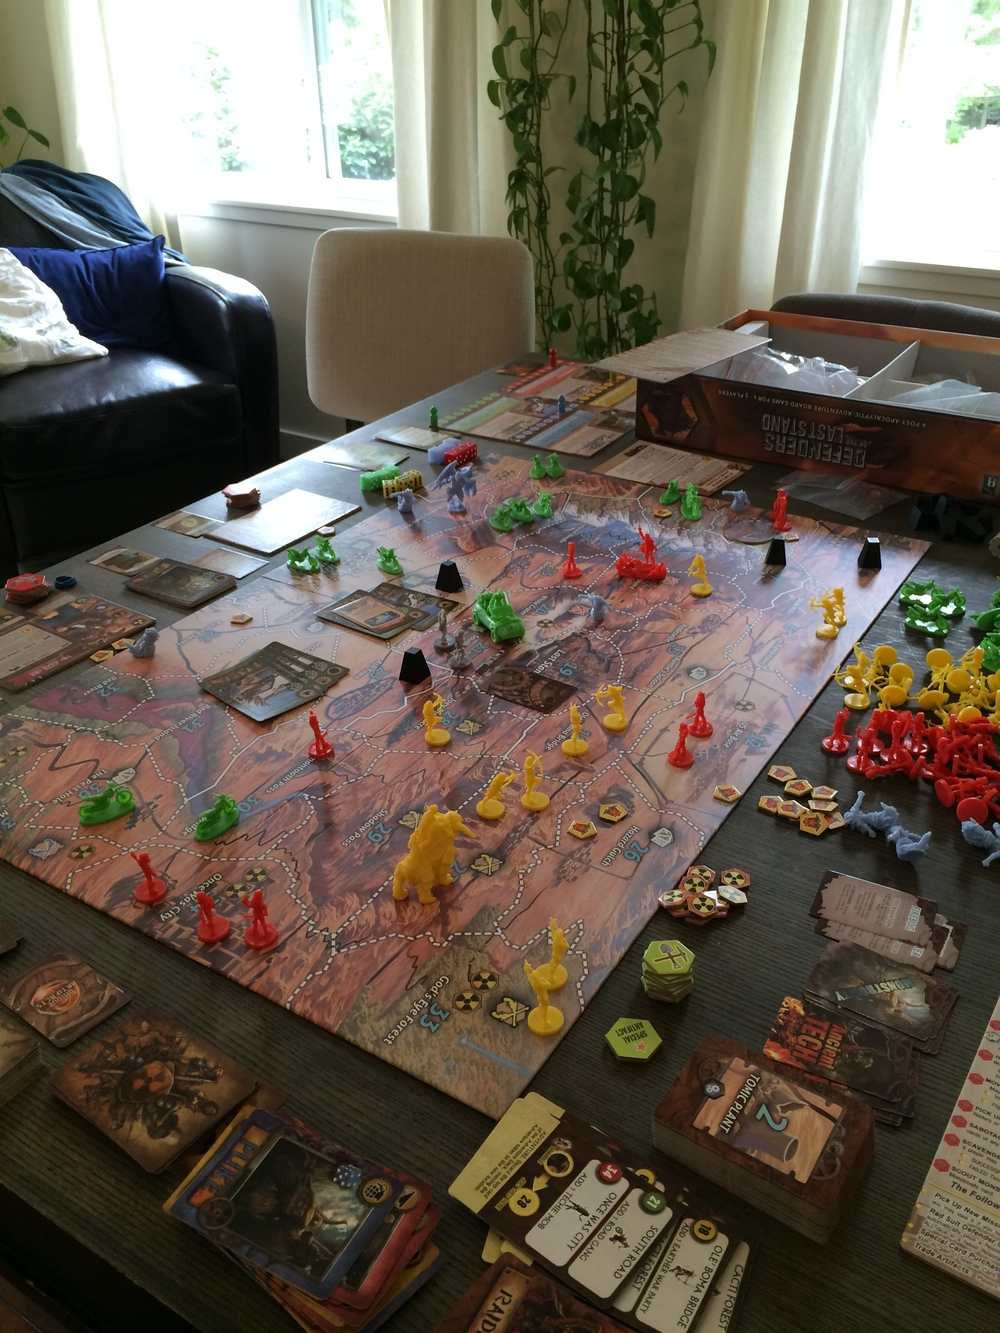 Justin's board game of Defender's of the Last Stand